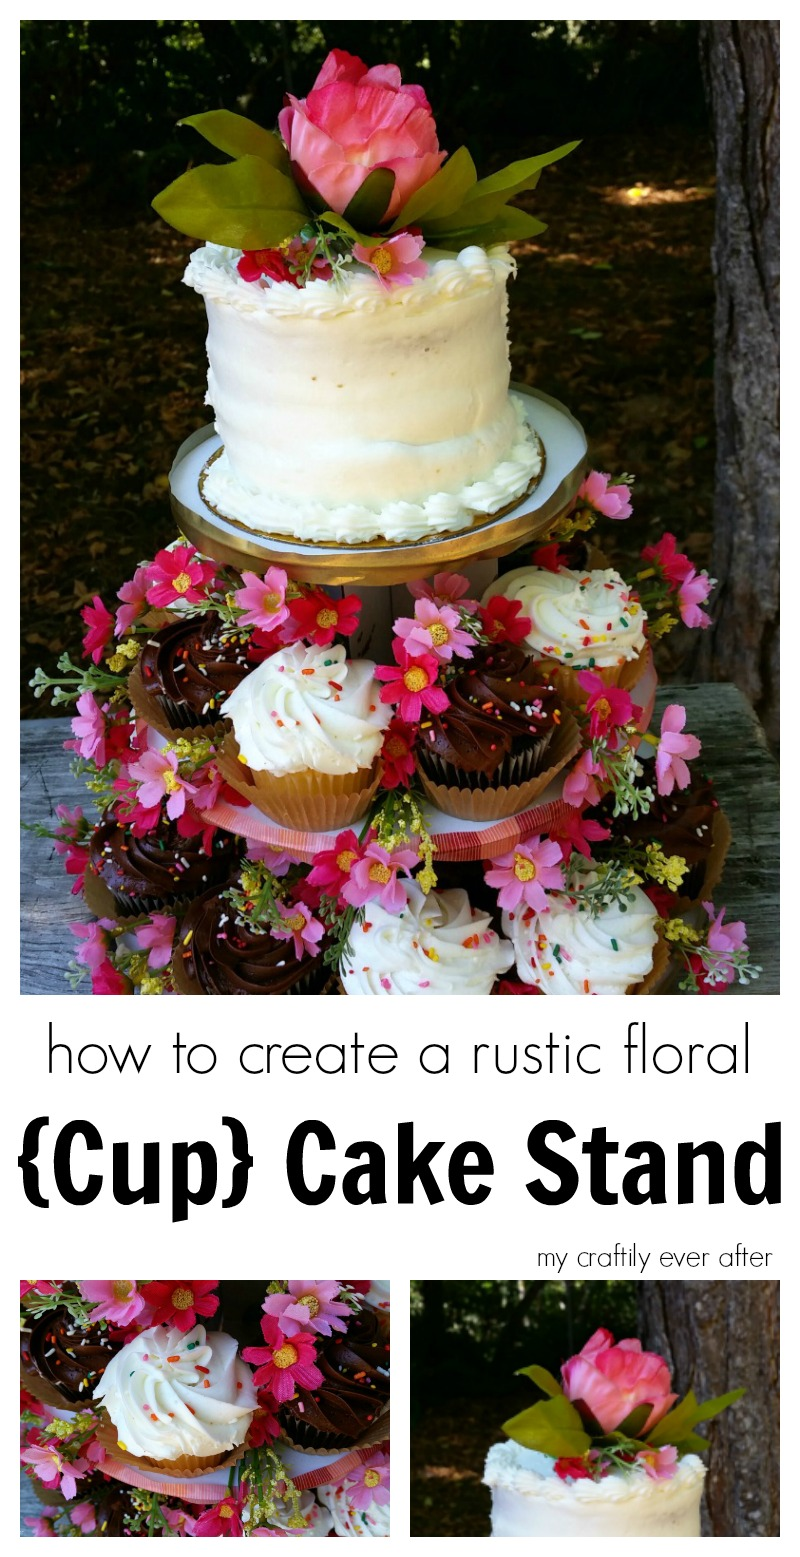 how to create a rustic floral cupcake stand